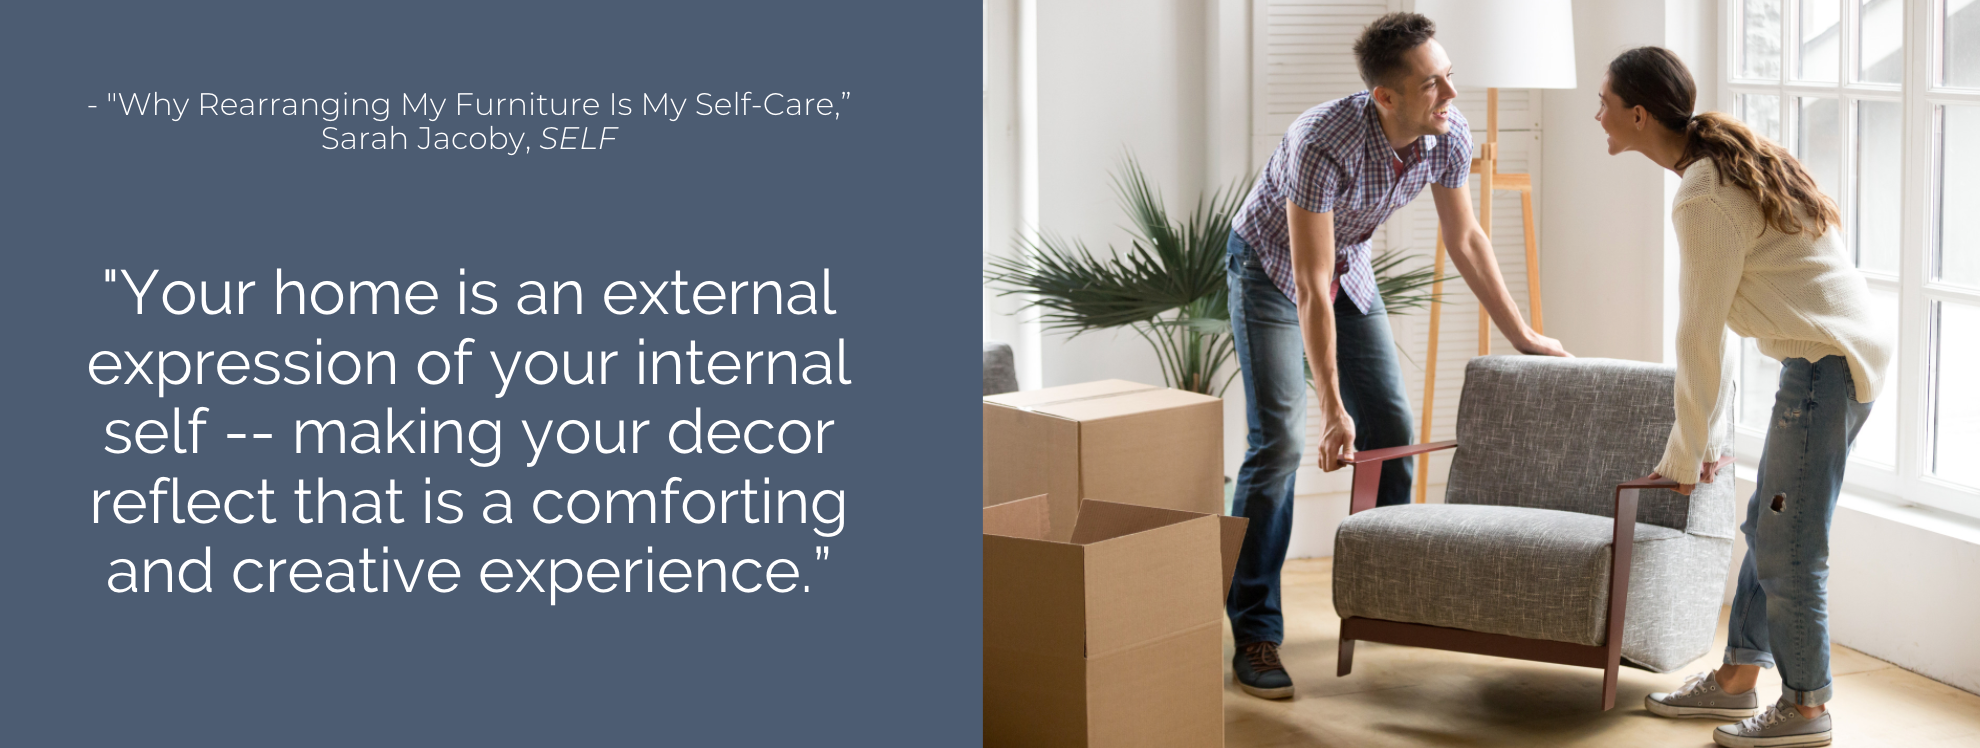 Your home is an external expression of your internal self